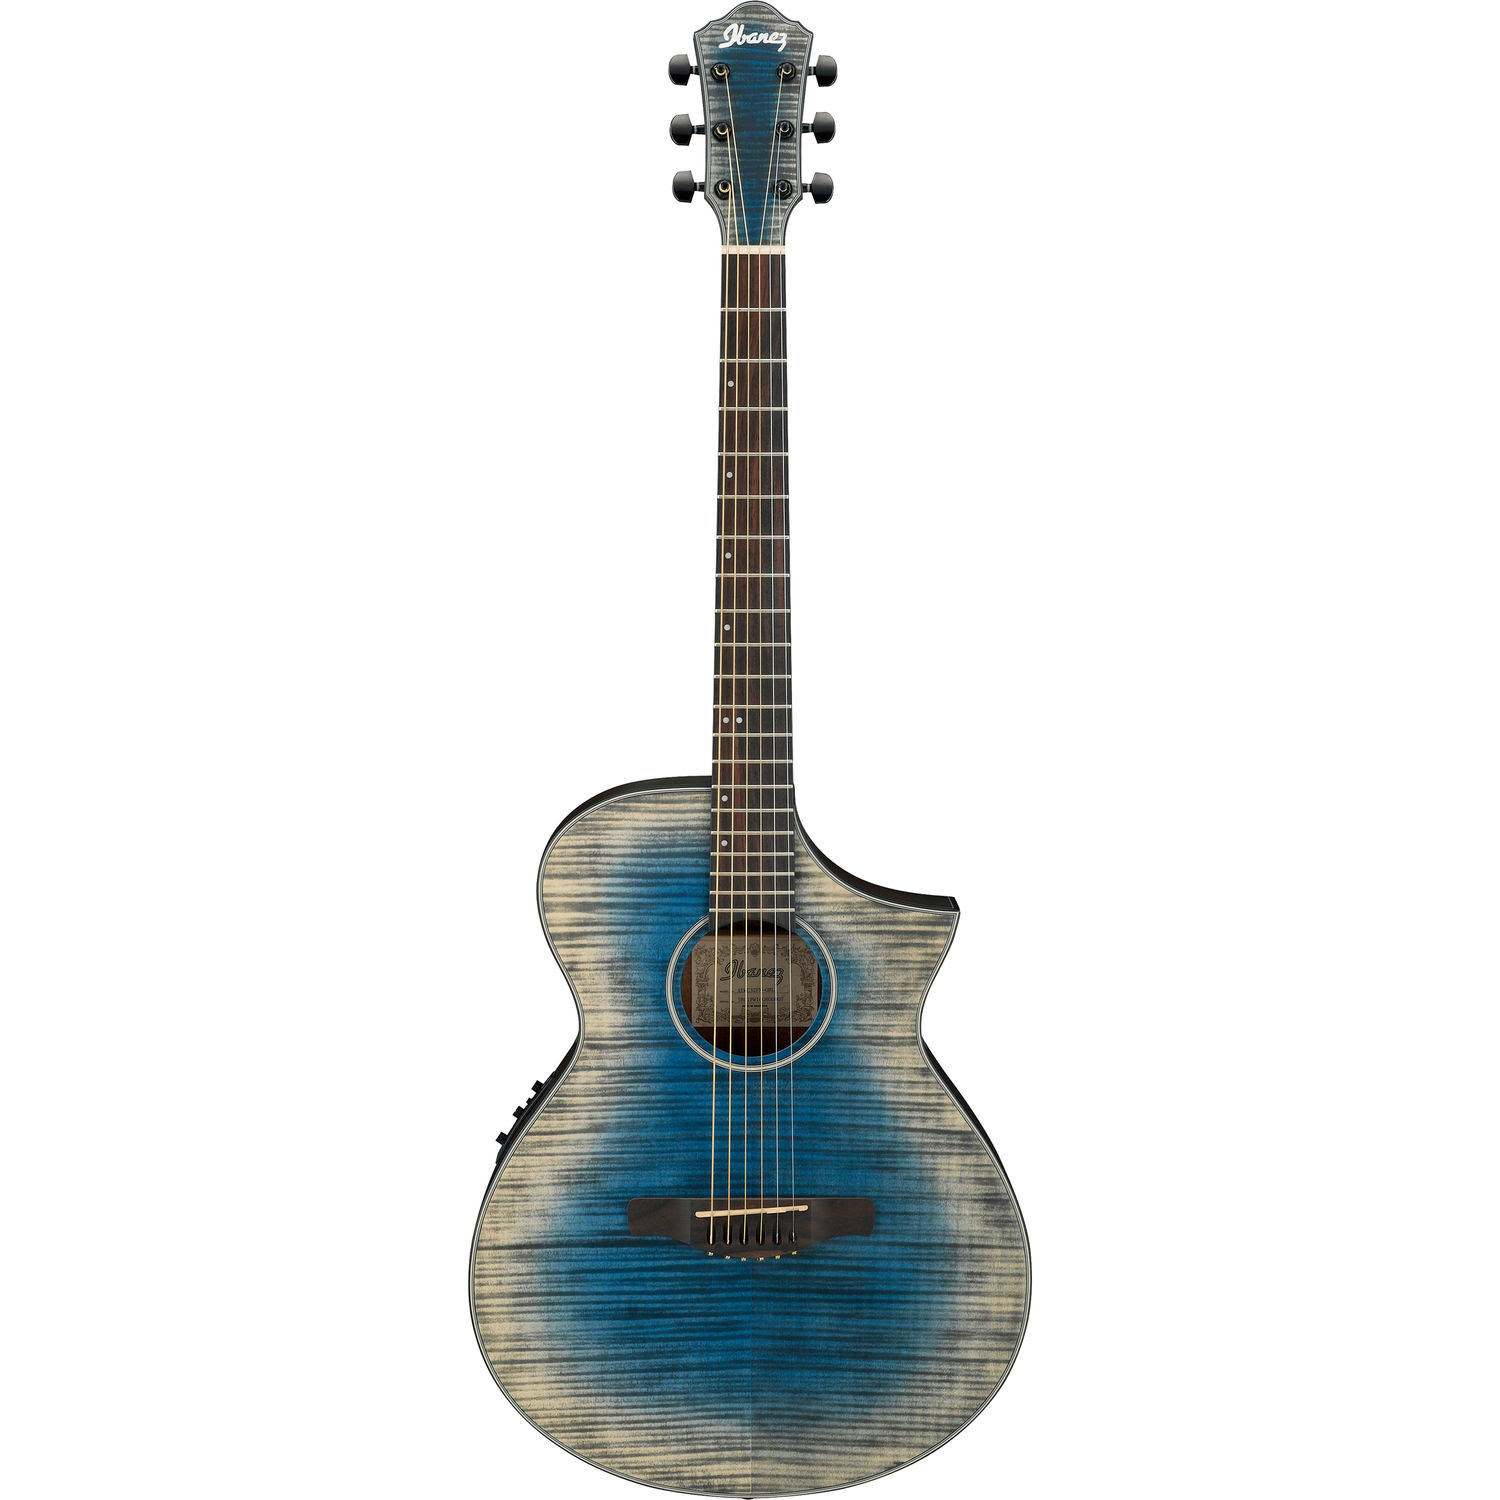 Ibanez AEWC32FM Acoustic-Electric Guitar - Glacier Blue Low Gloss